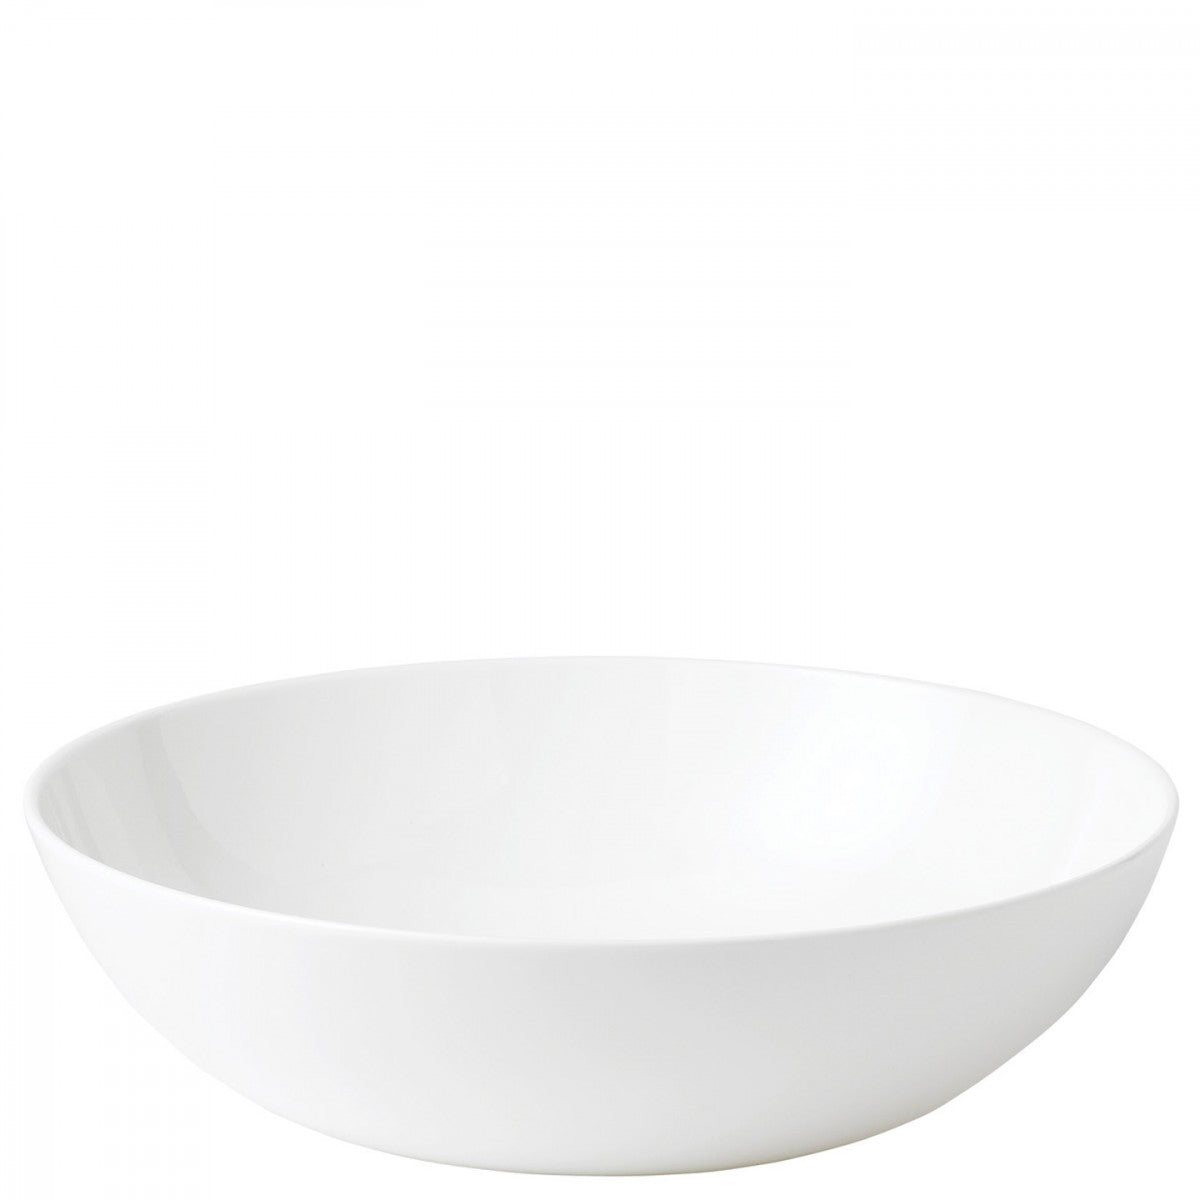 Jasper Conran White Serving Bowl 30cm